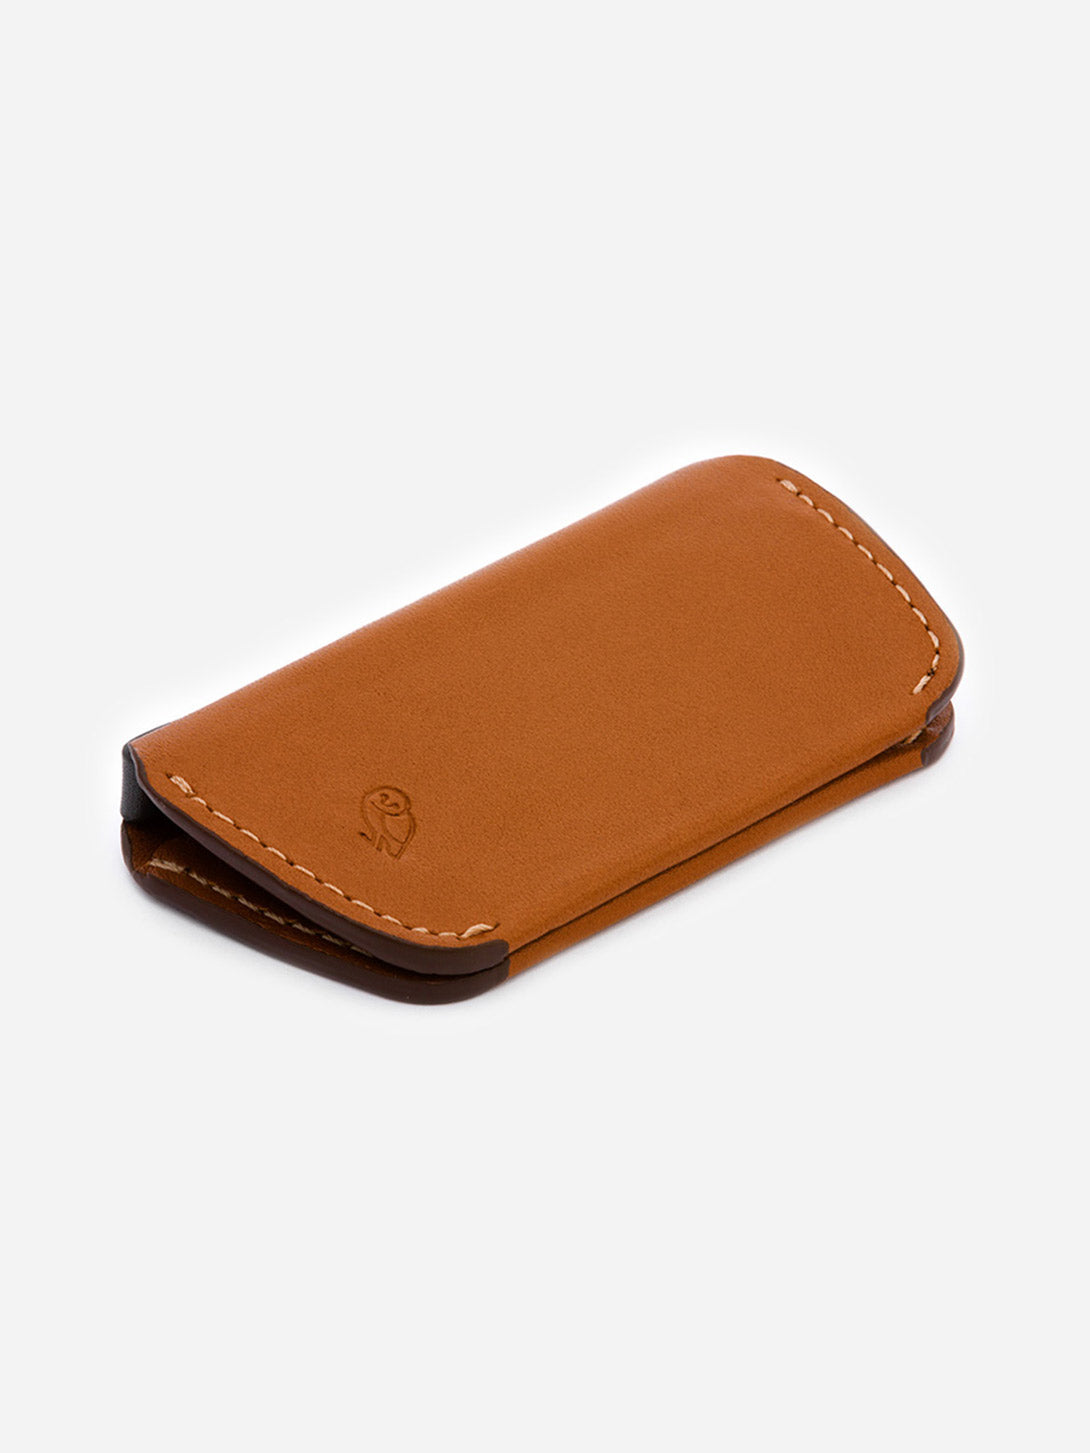 BELLROY KEY COVER PLUS BLUE CARAMEL